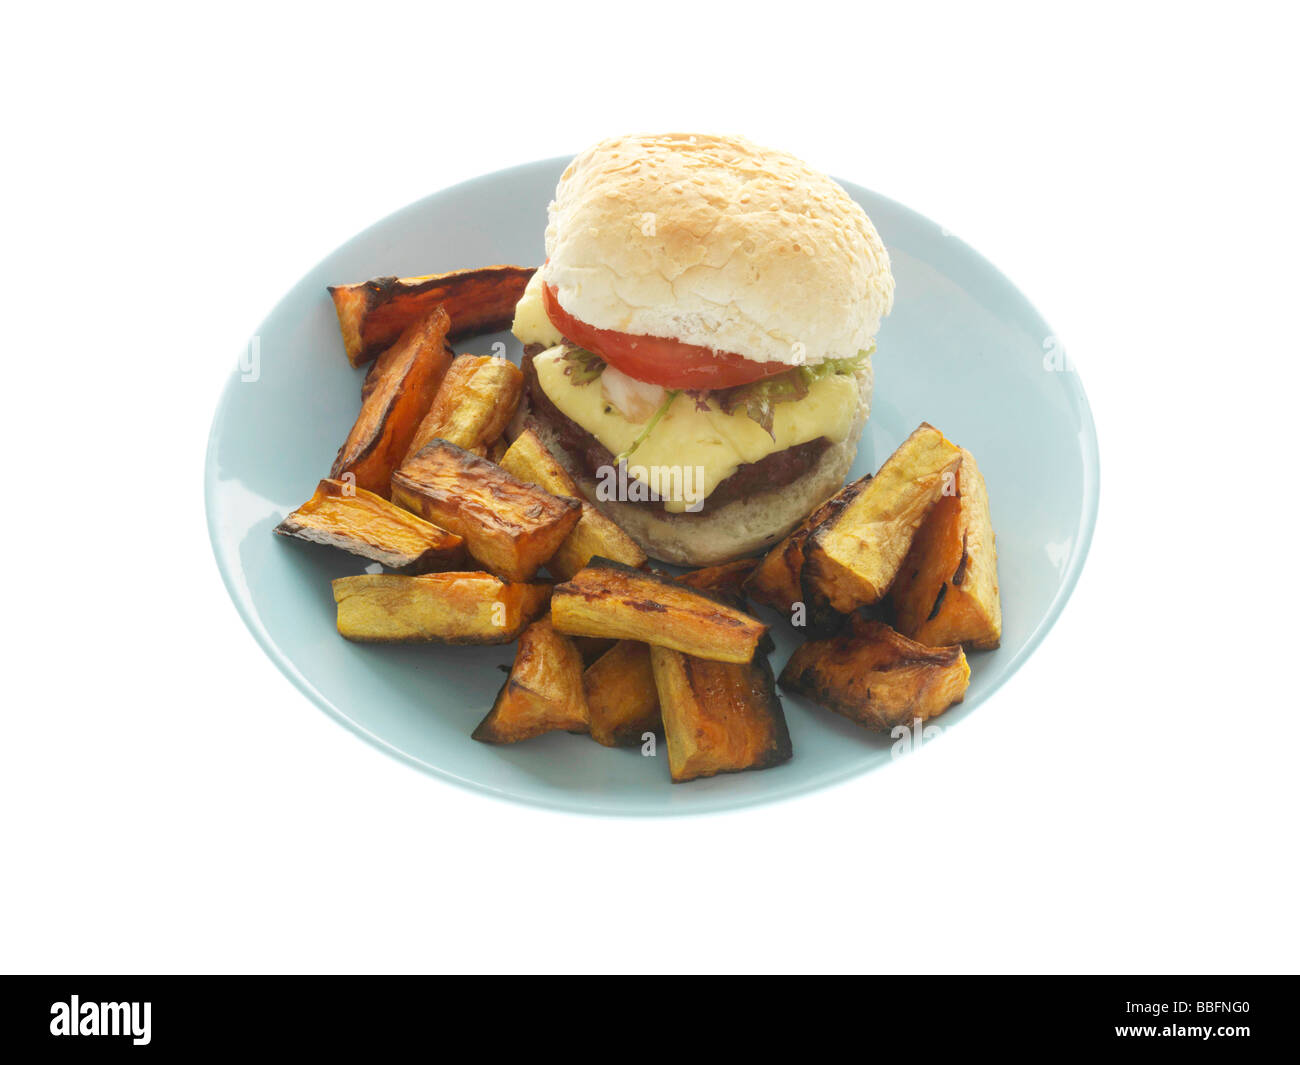 Home Made Cheeseburger with Sweet Potato Wedges - Stock Image